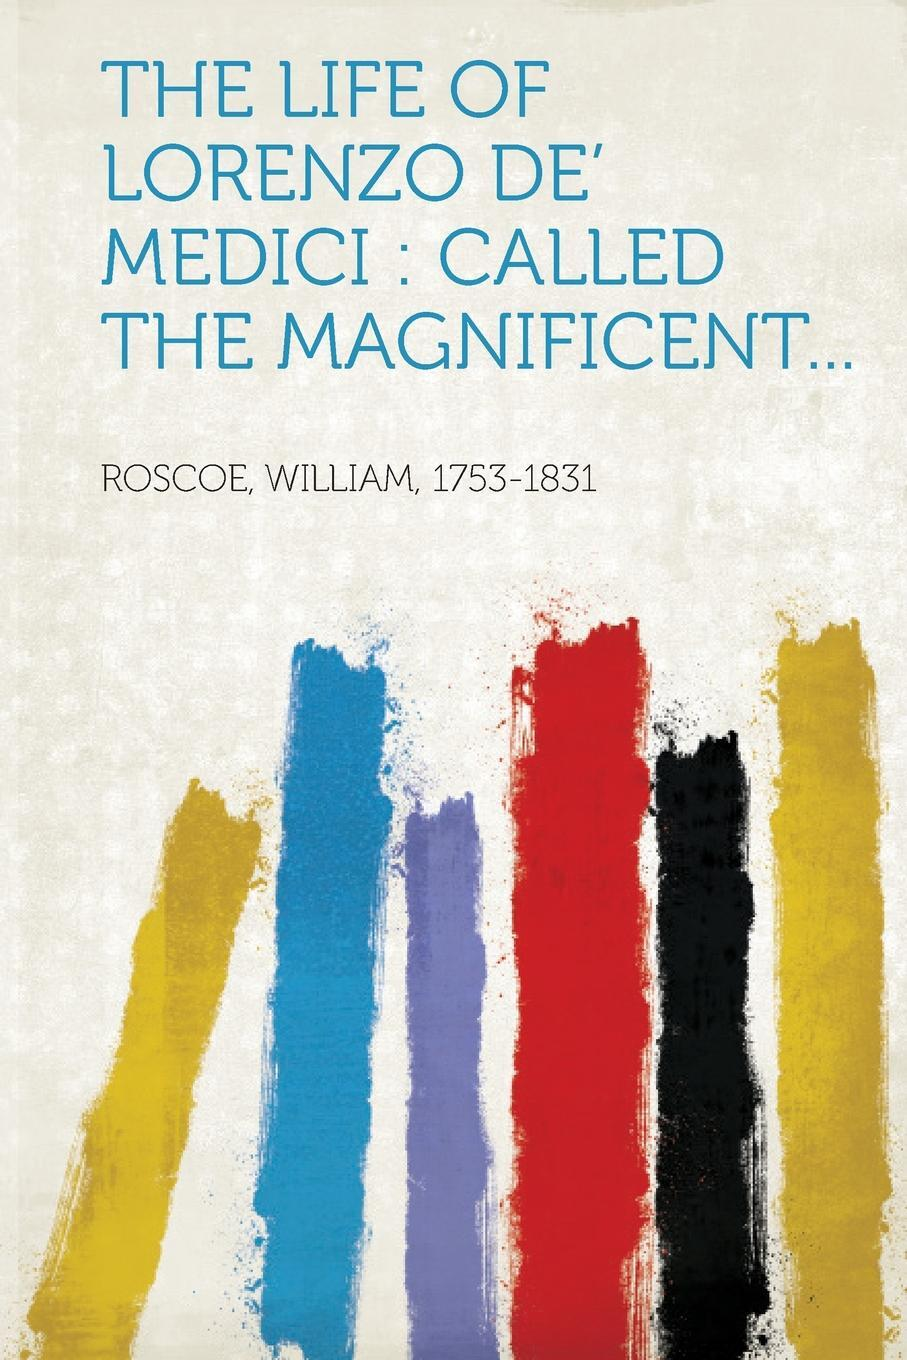 The Life of Lorenzo de' Medici. Called the Magnificent...